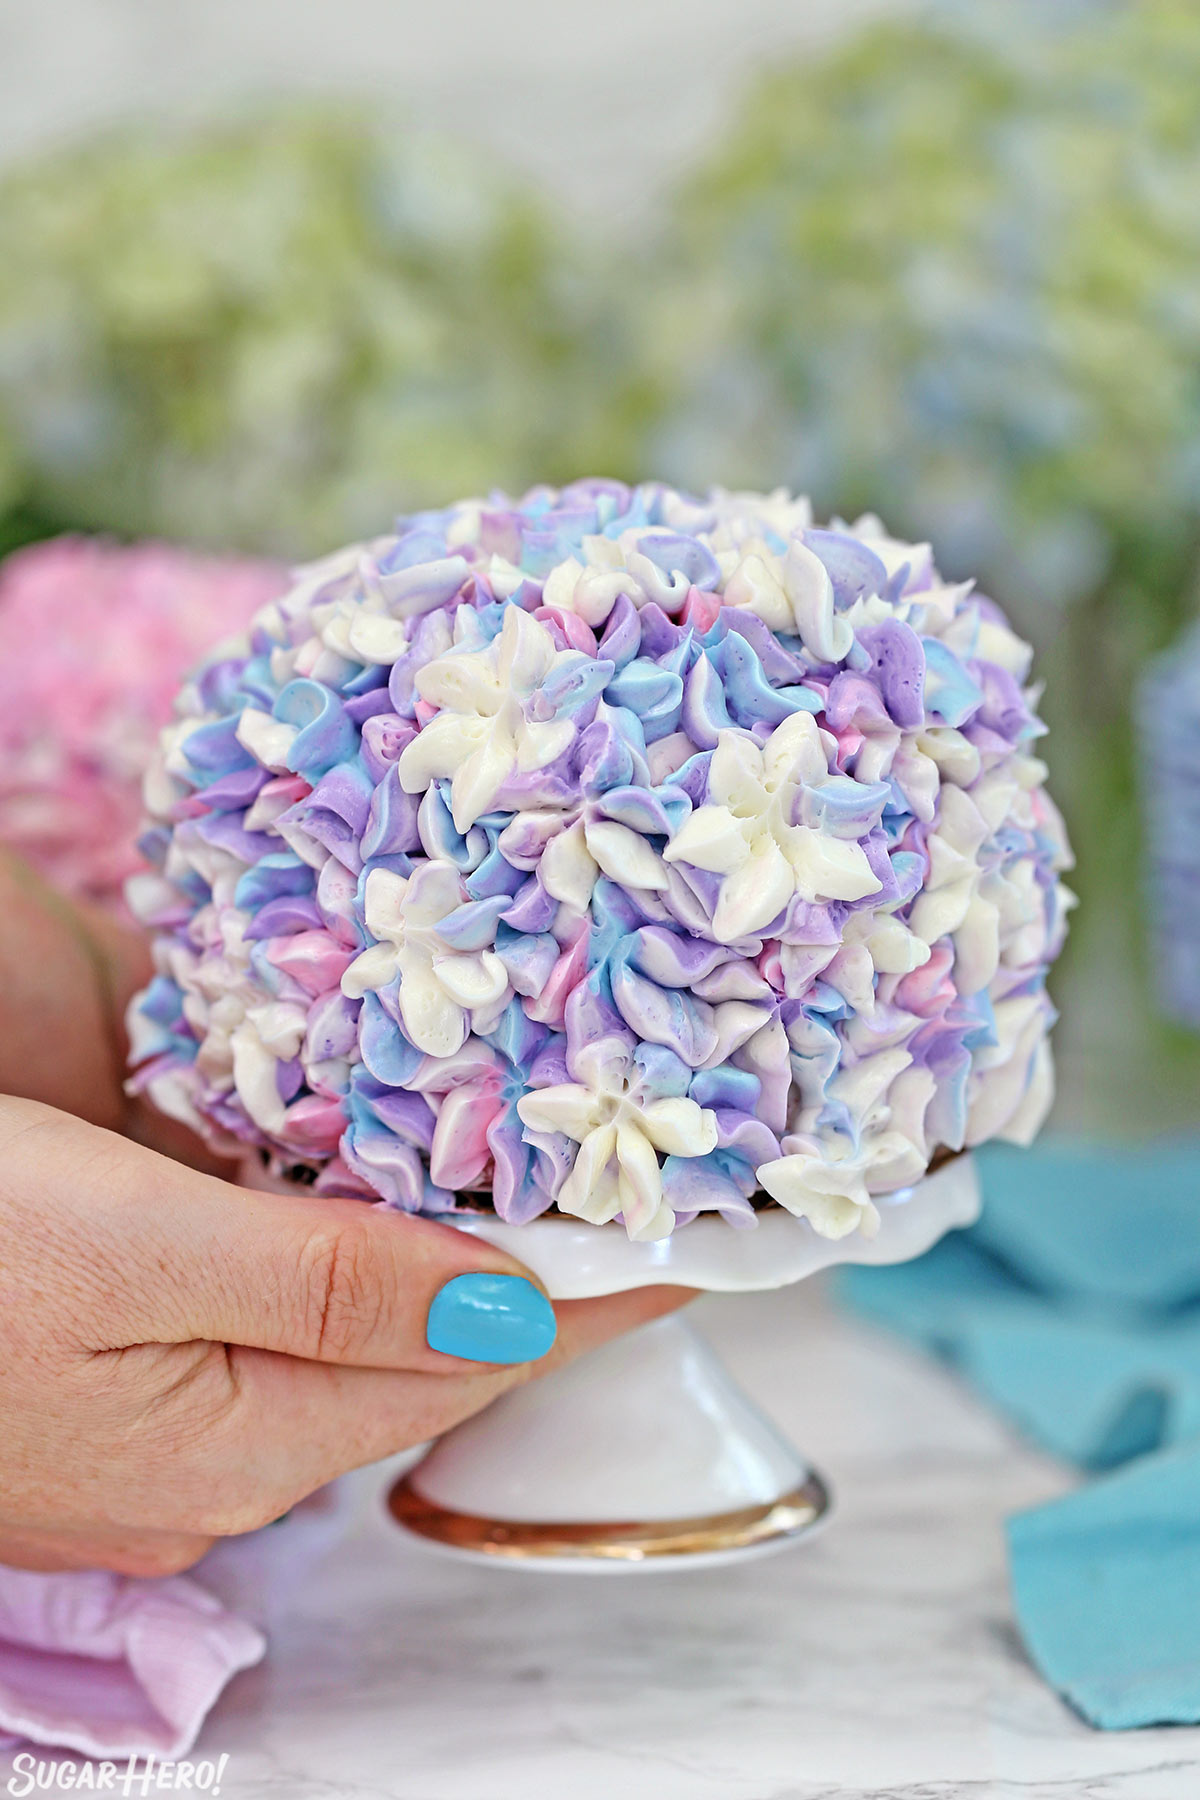 Hydrangea Cakes - A cake displayed on a cake stand. Covered in colorful flowers, to look like a hydrangea. | From SugarHero.com